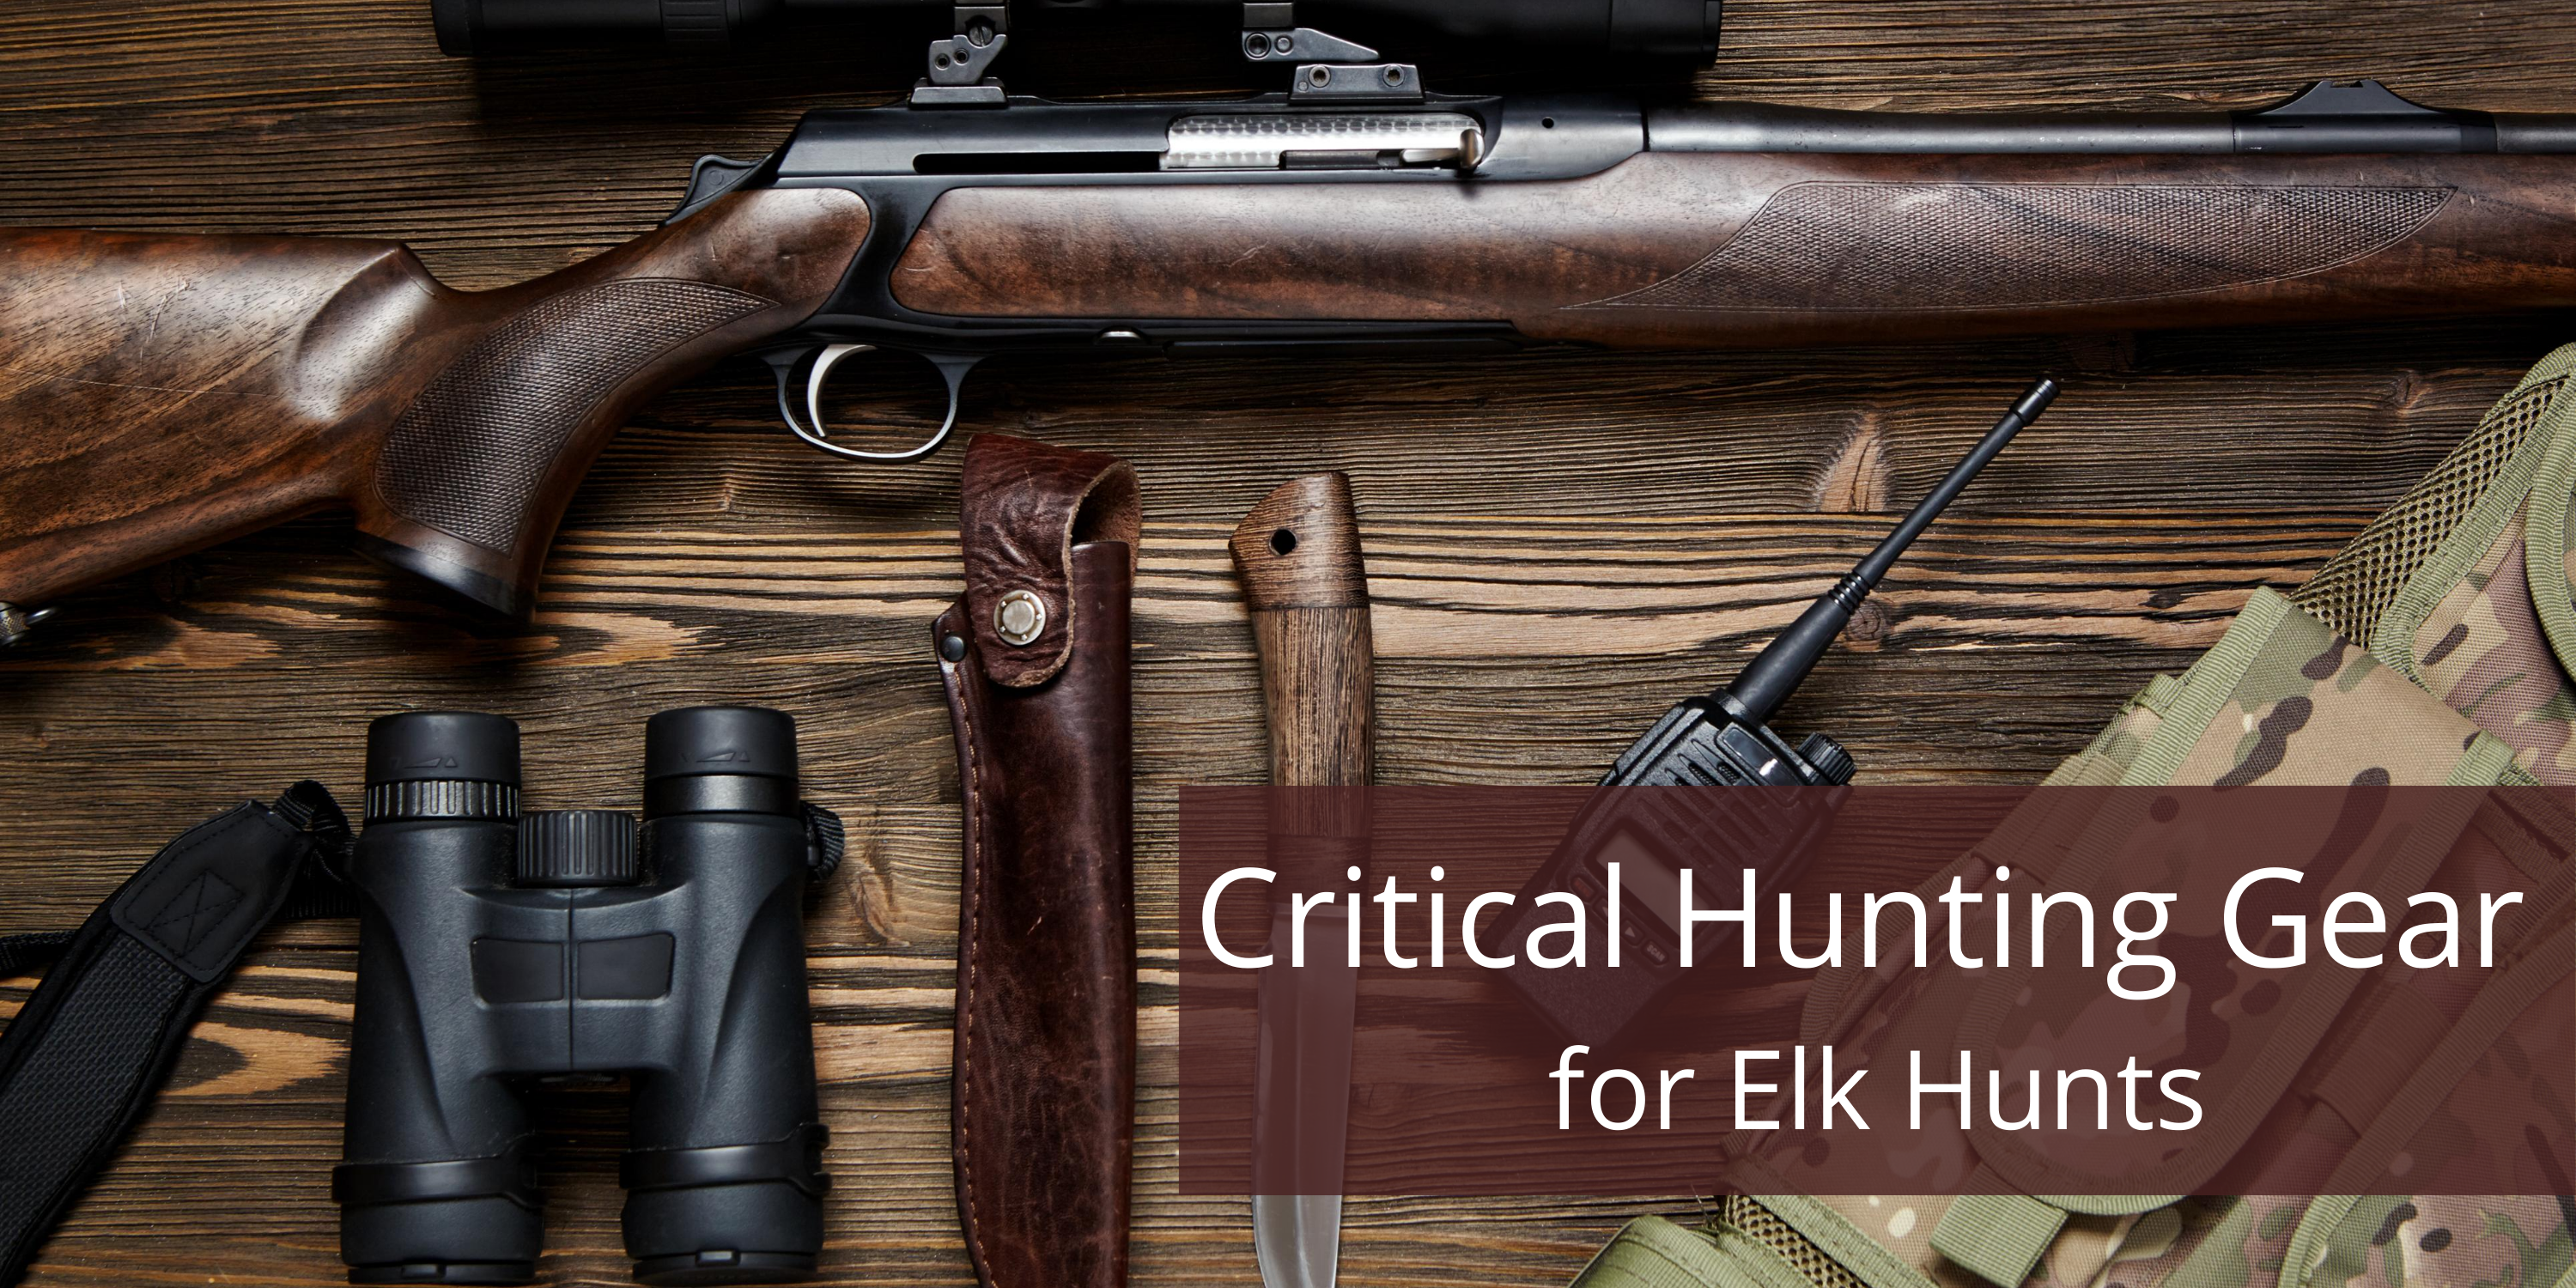 A picture of a rifle with a scope, a pair of binoculars, knife, communication device all are critical hunting gear for elk hunting